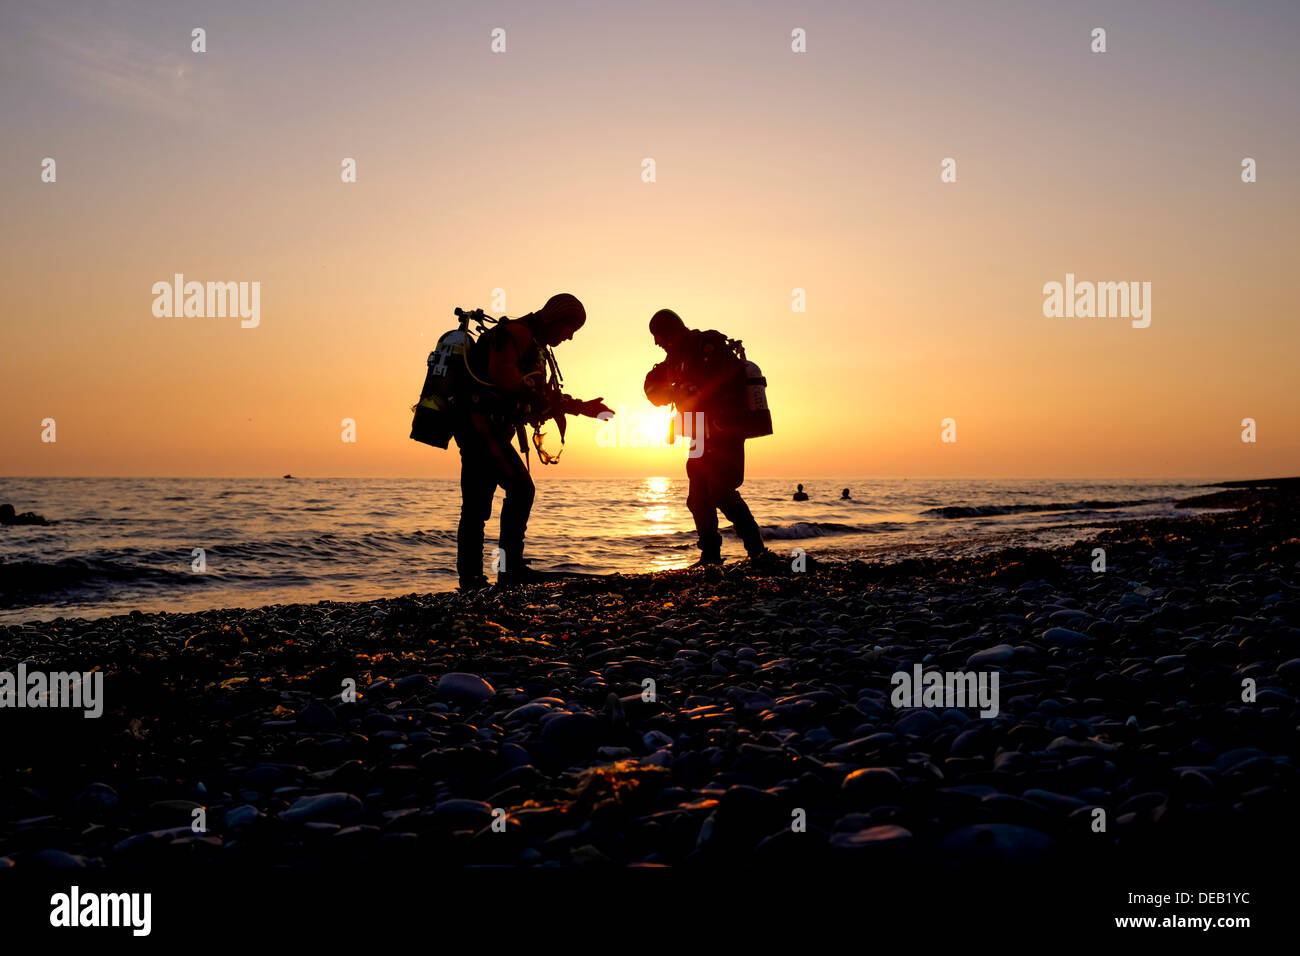 Due uomini in silhouette, scuba diving al tramonto, Cardigan Bay, Aberystwyth Wales UK Foto Stock